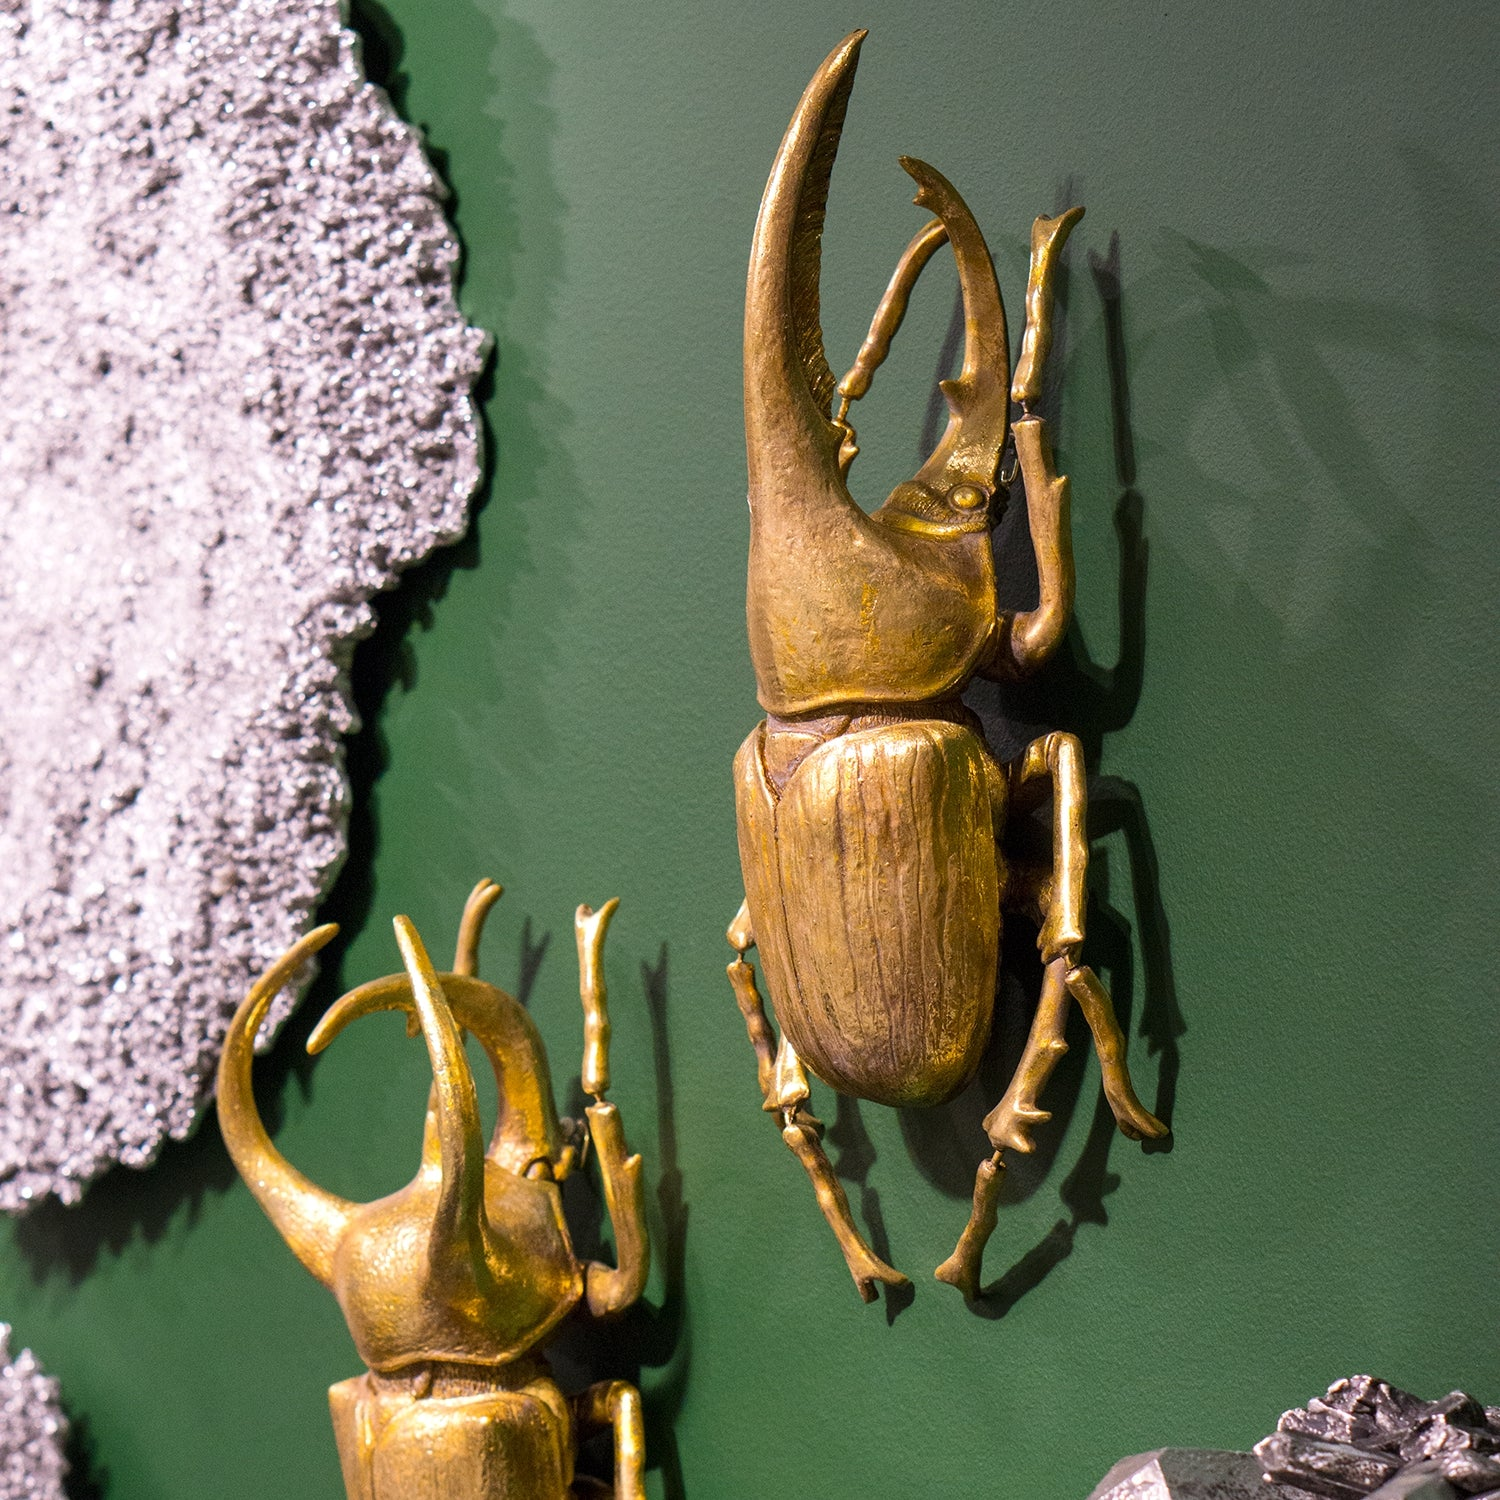 Beetle 'Hercules', Wall Art